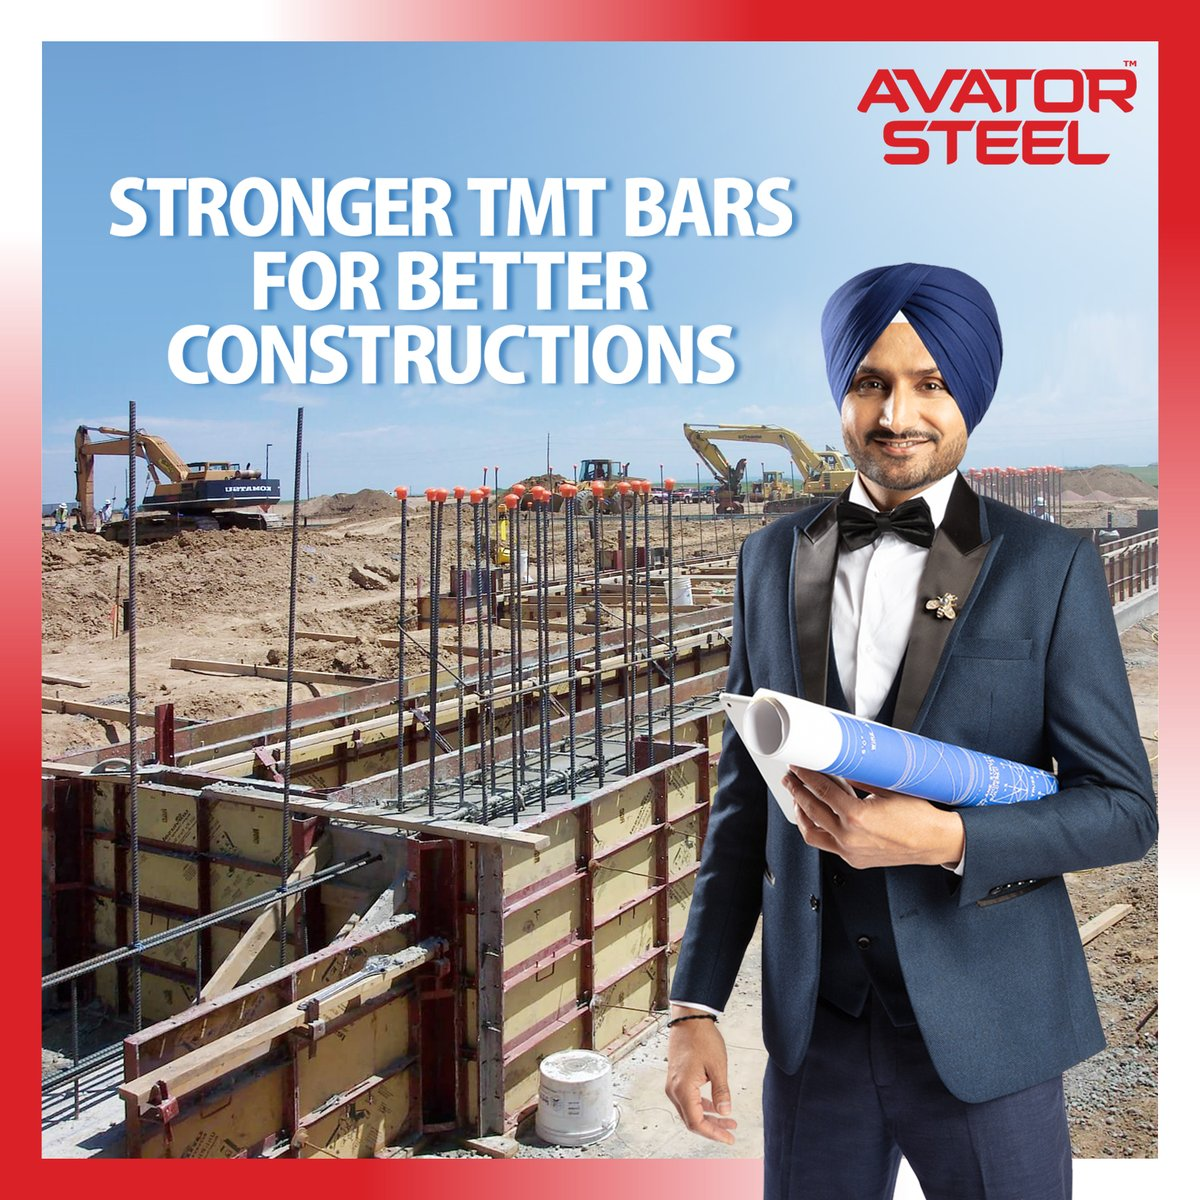 Make sure that your construction stands strong for many years. Place your trust in the leaders of TMT bars, #AvatorSteel.   #rustprooftmtbar #earthquakeproof #HarbhajanSingh  @harbhajan_singh